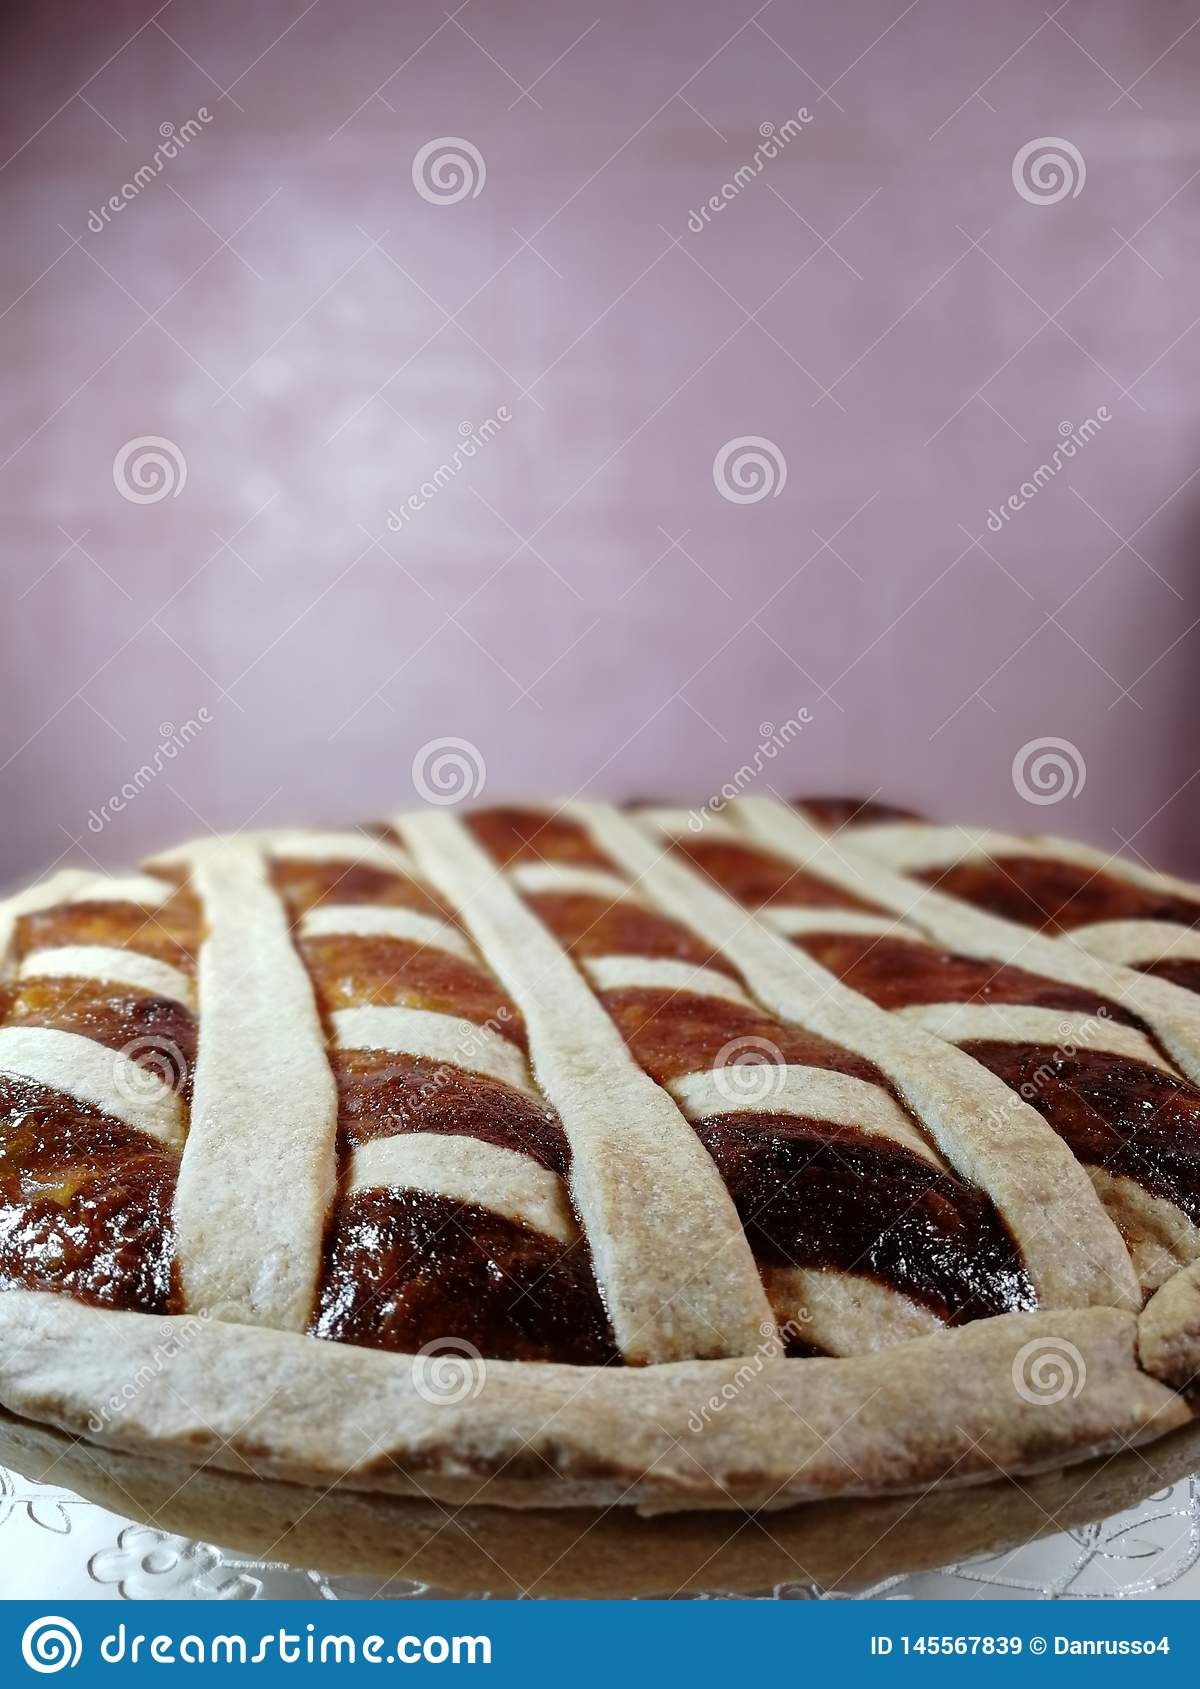 Italian traditional food called pastiera on Blur Background